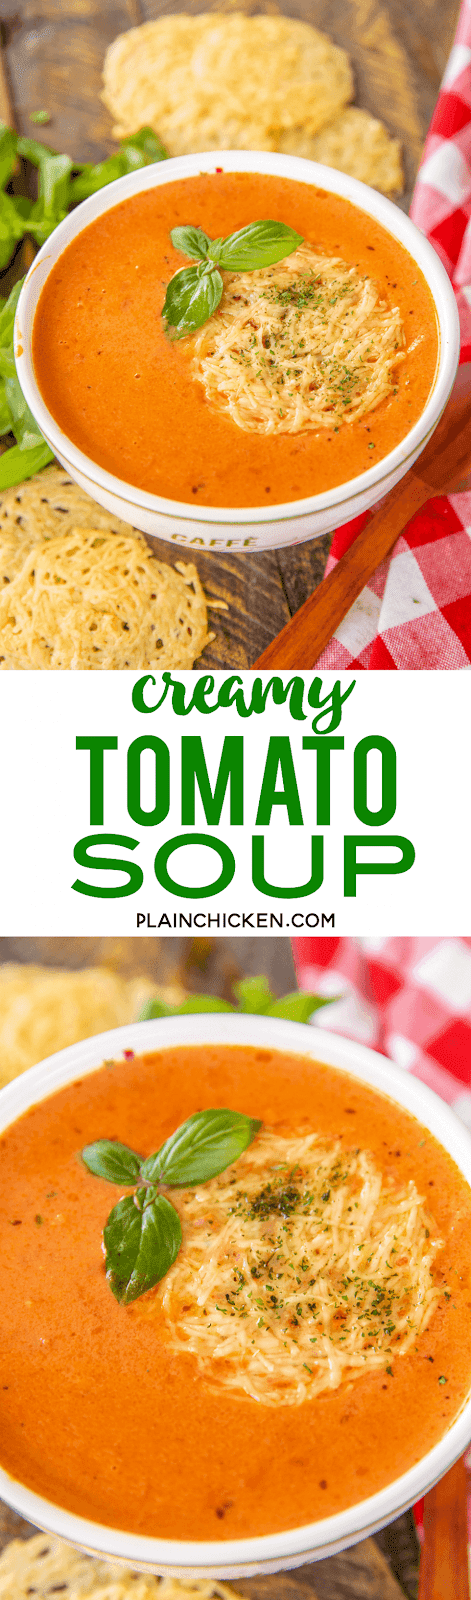 Creamy Tomato Soup - grown up version of my favorite soup as a kid. Shallot, butter, garlic, oregano, red pepper flakes, tomato juice, crushed tomatoes, chicken base, sugar, heavy cream, salt and pepper. We served the soup with some yummy parmesan crisps. Also delicious leftover! #soup #tomatosoup #quick